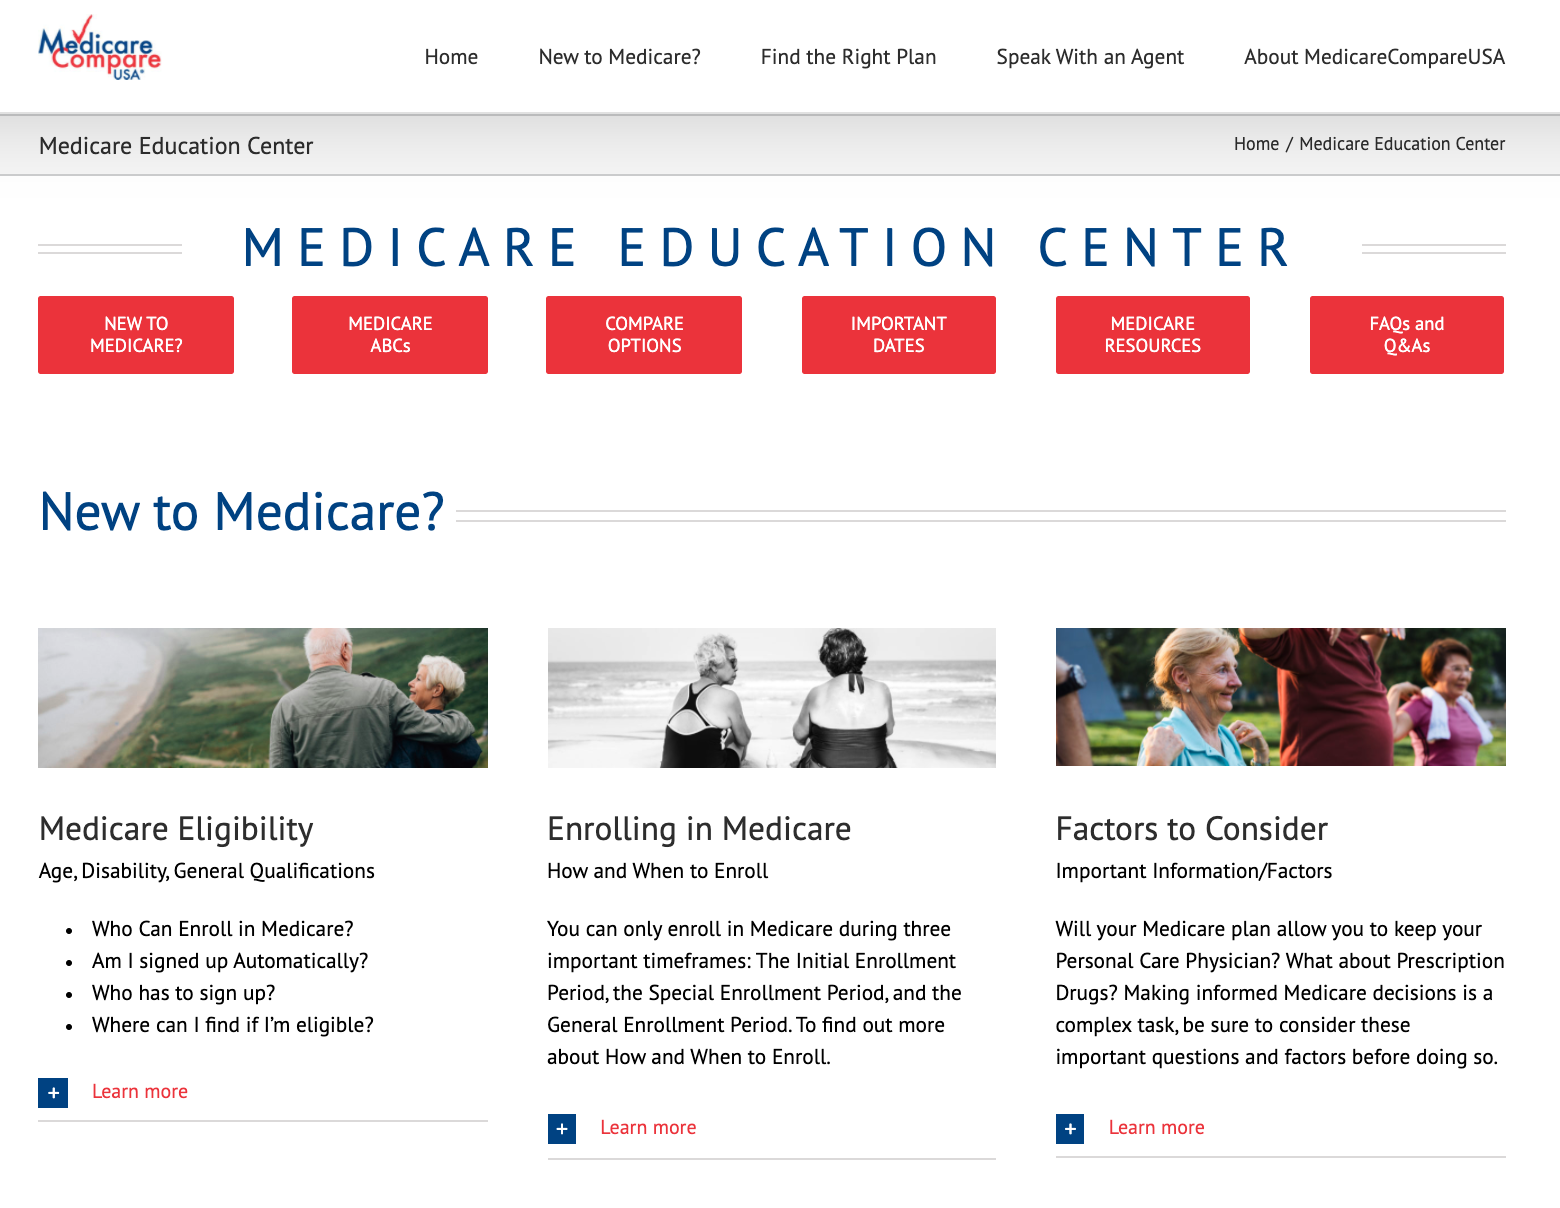 Medicare Education Center